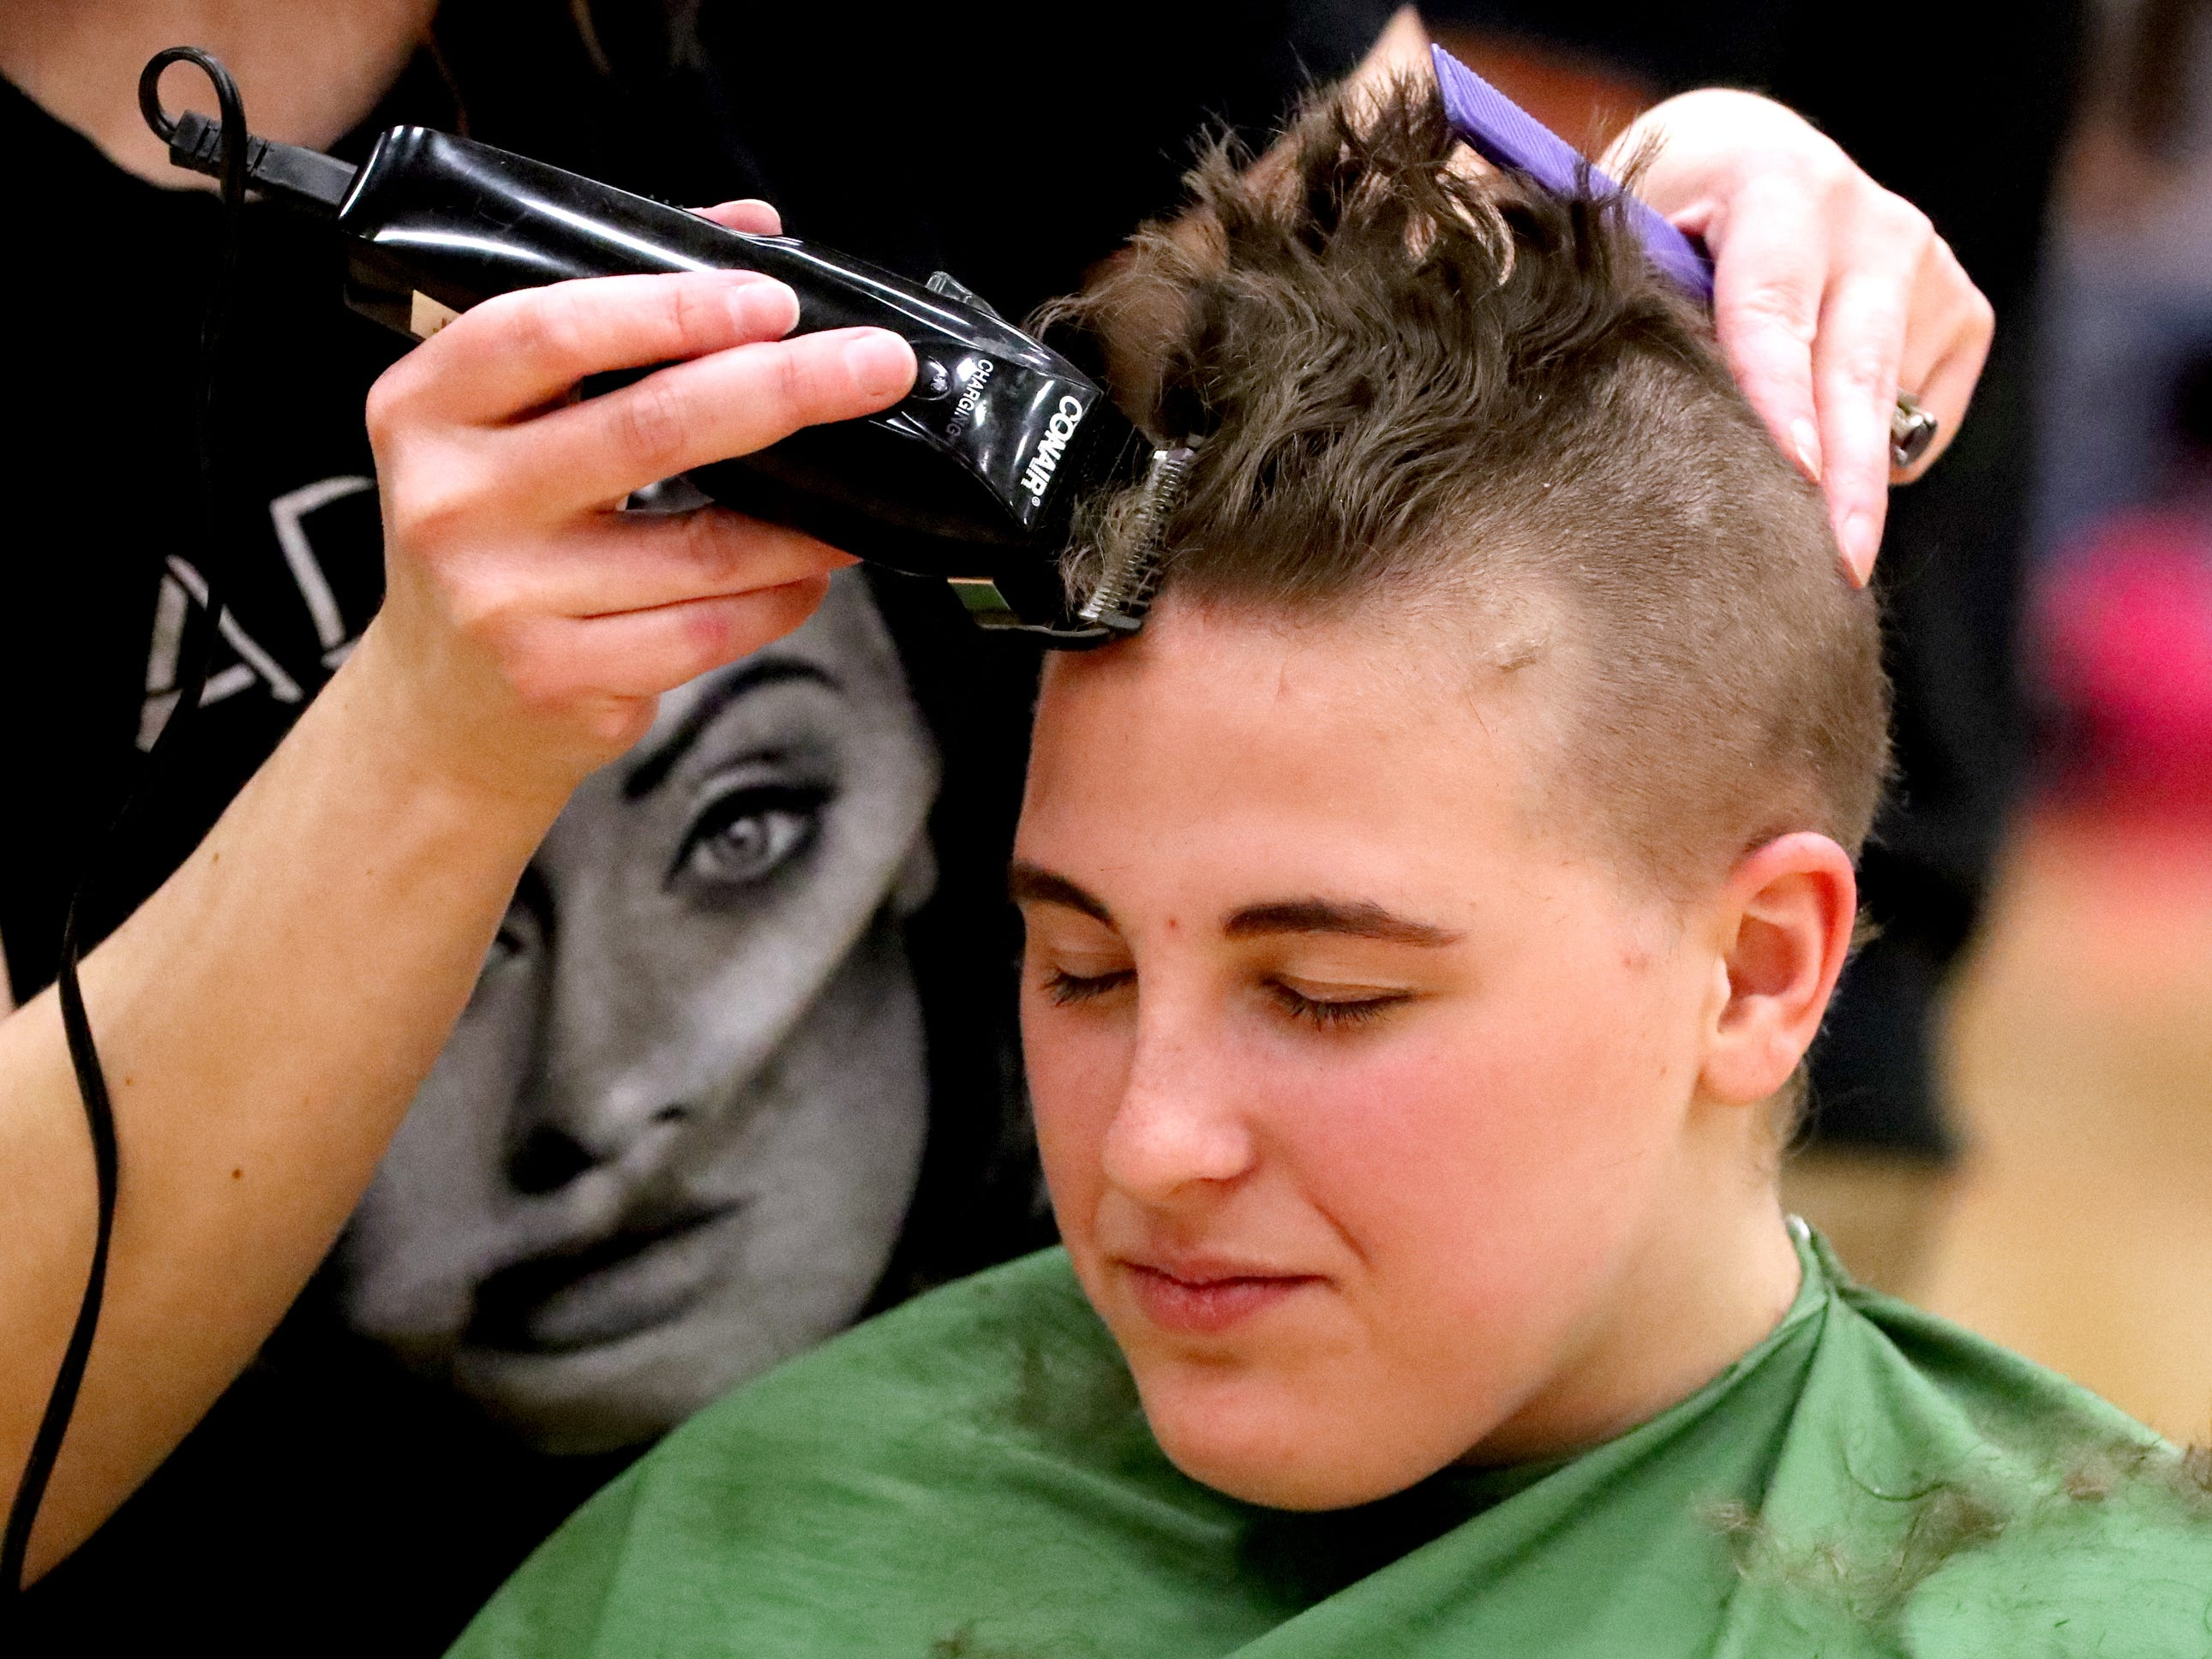 Riverdale senior Brillian Orr gets her head shaved during Riverdale High School's sixth annual Brave the Shave fundraiser to benefit St. Baldrick's Foundation on Thursday, March 21, 2019. The organization raises funds and awareness for childhood cancer.